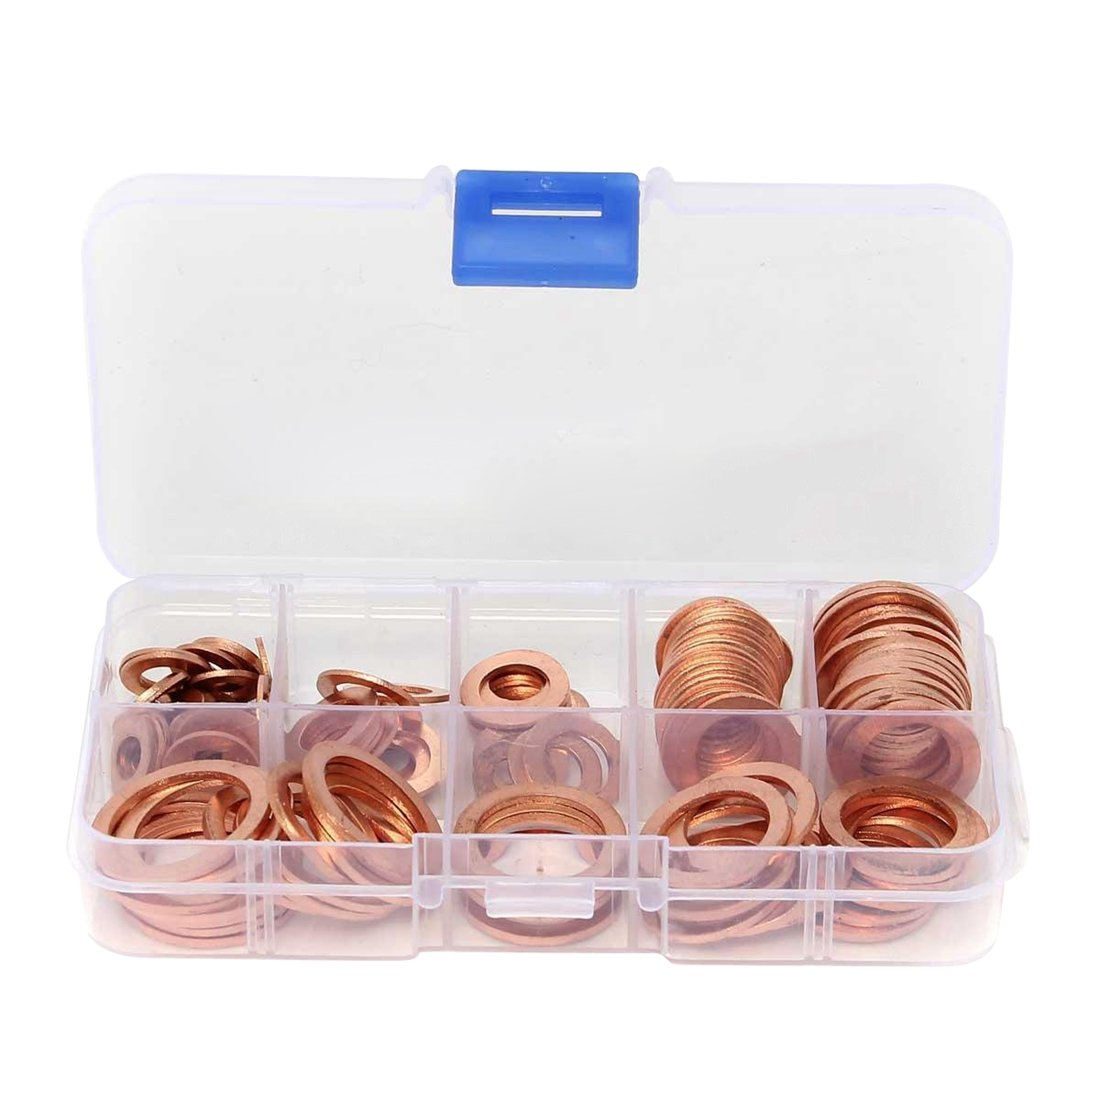 SODIAL(R) 120Pcs 8 Sizes Assorted Solid Copper Crush Washers Seal Flat Ring Set With Box